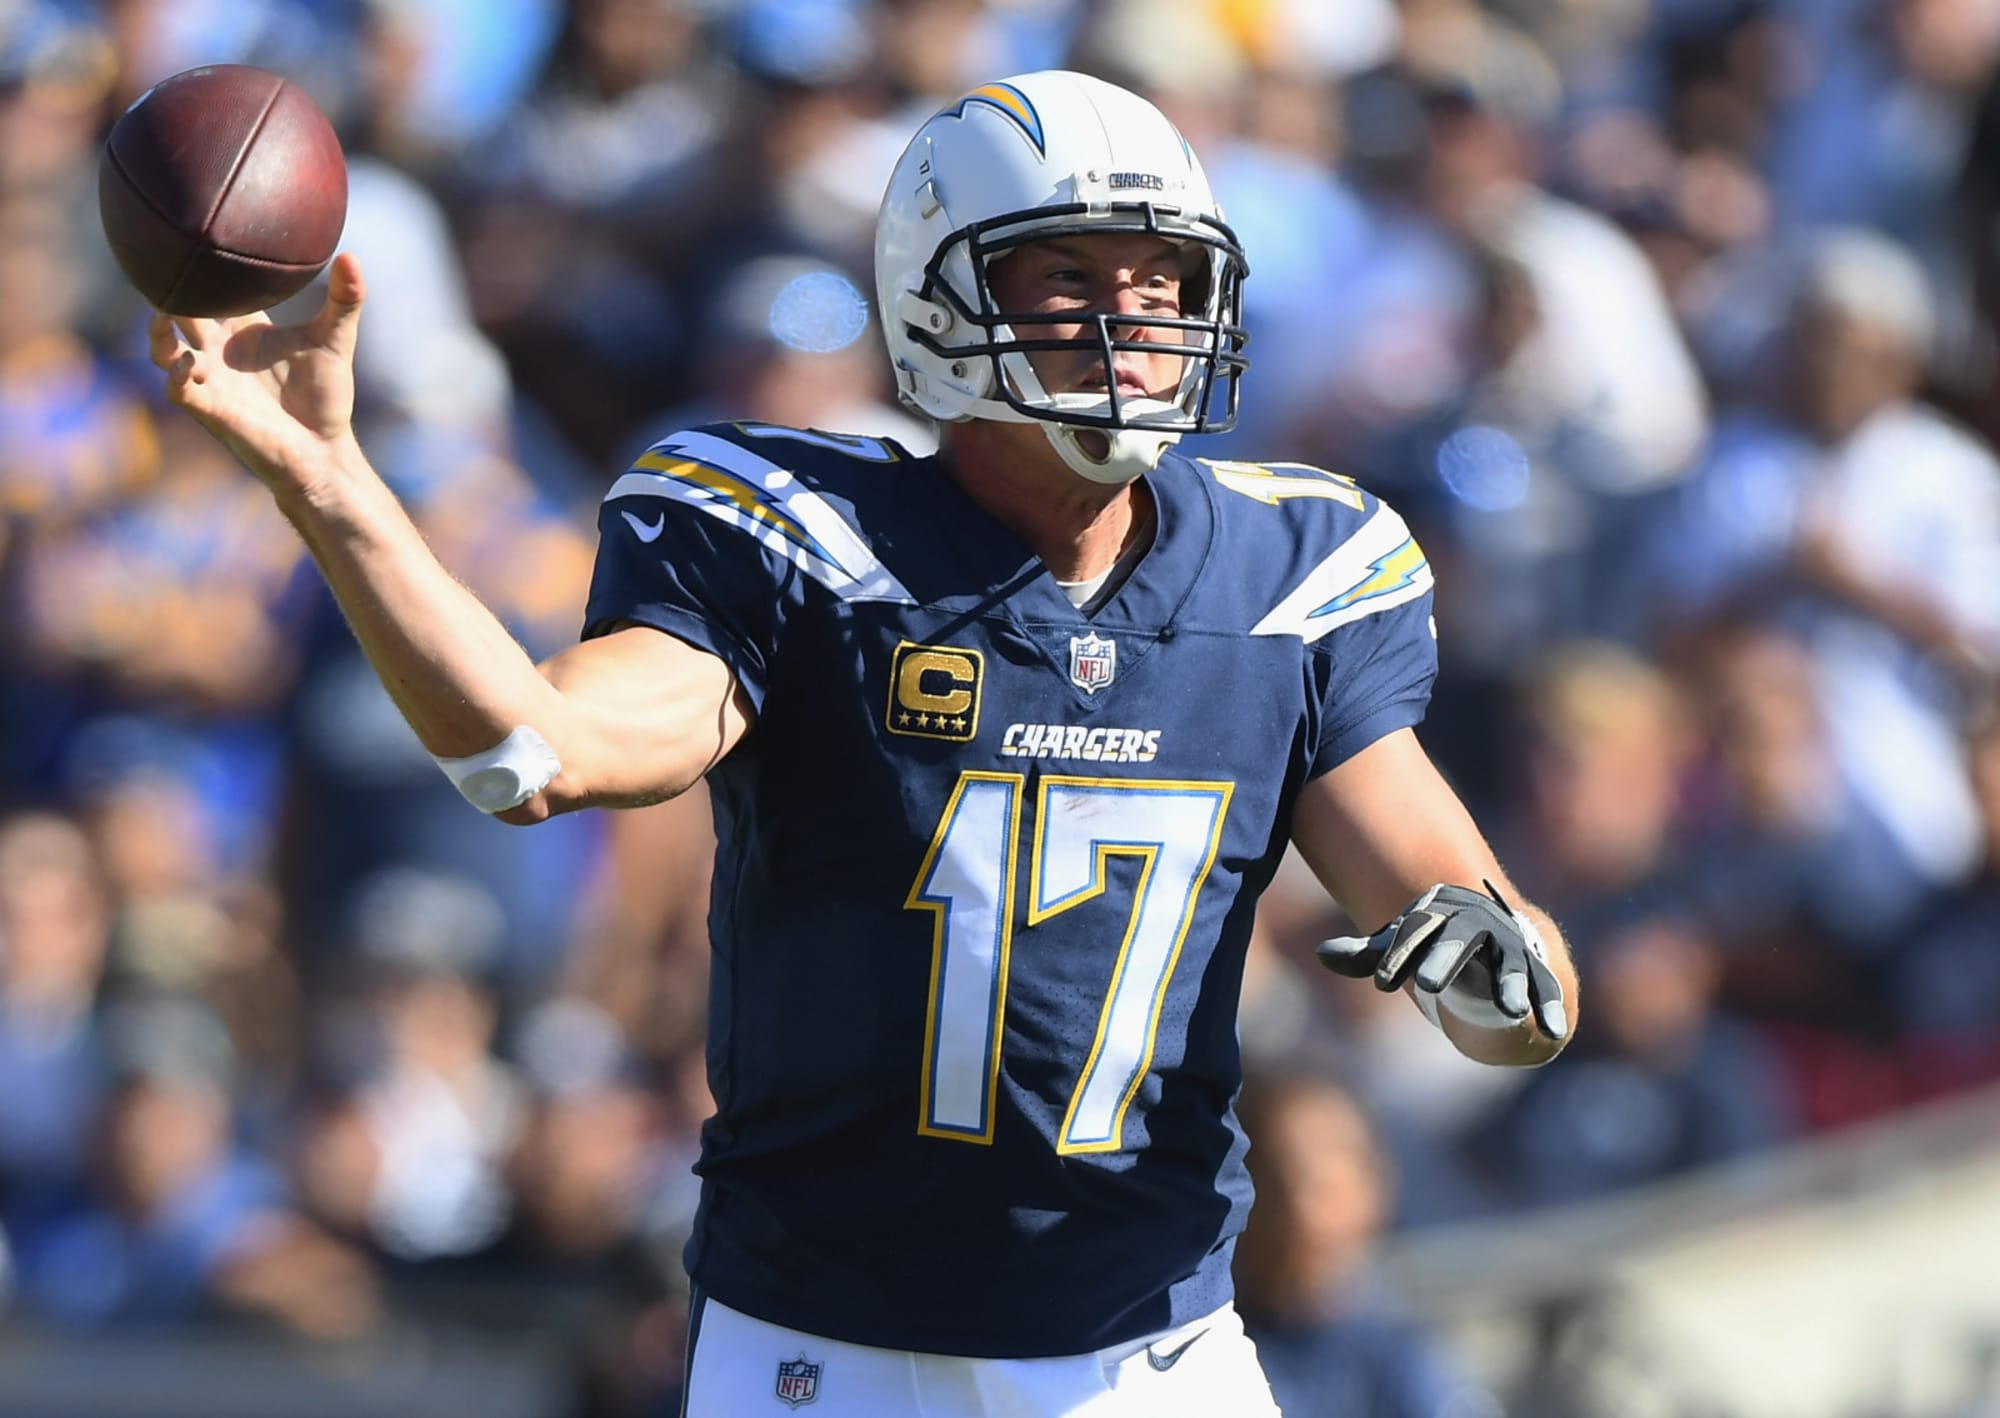 Nfl Picks Against The Spread For Week 4